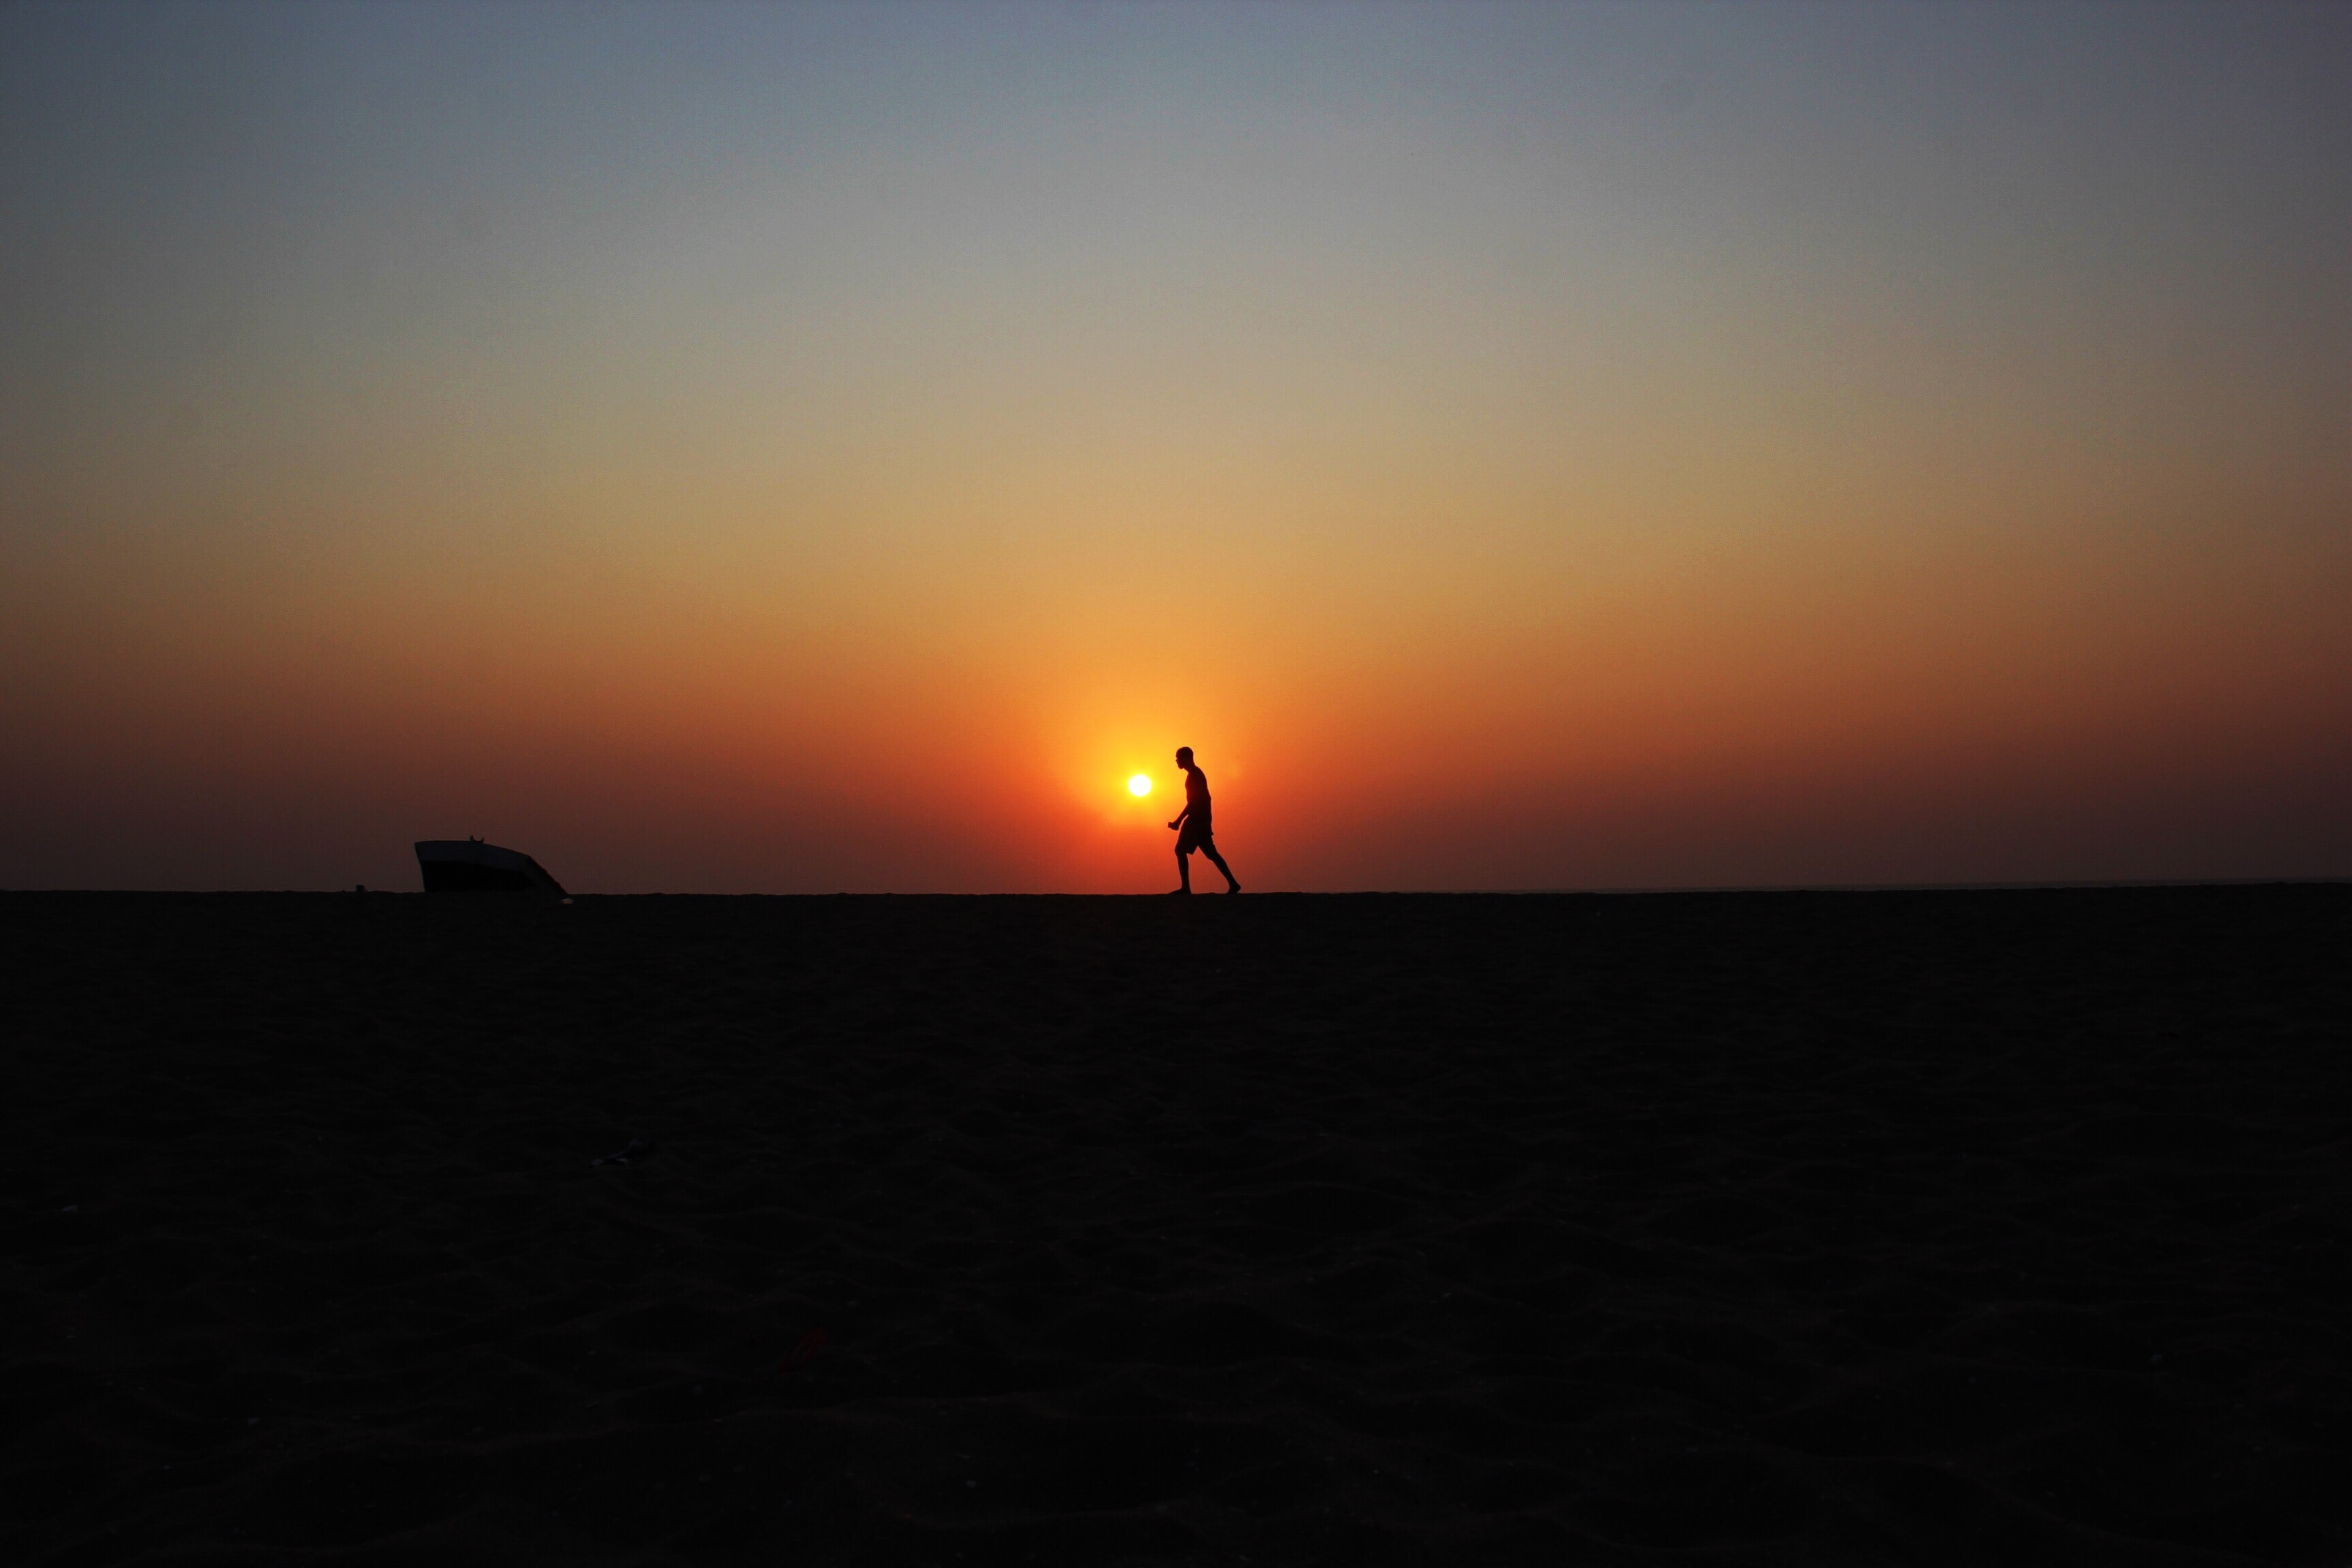 silhouette of walking man under sunset